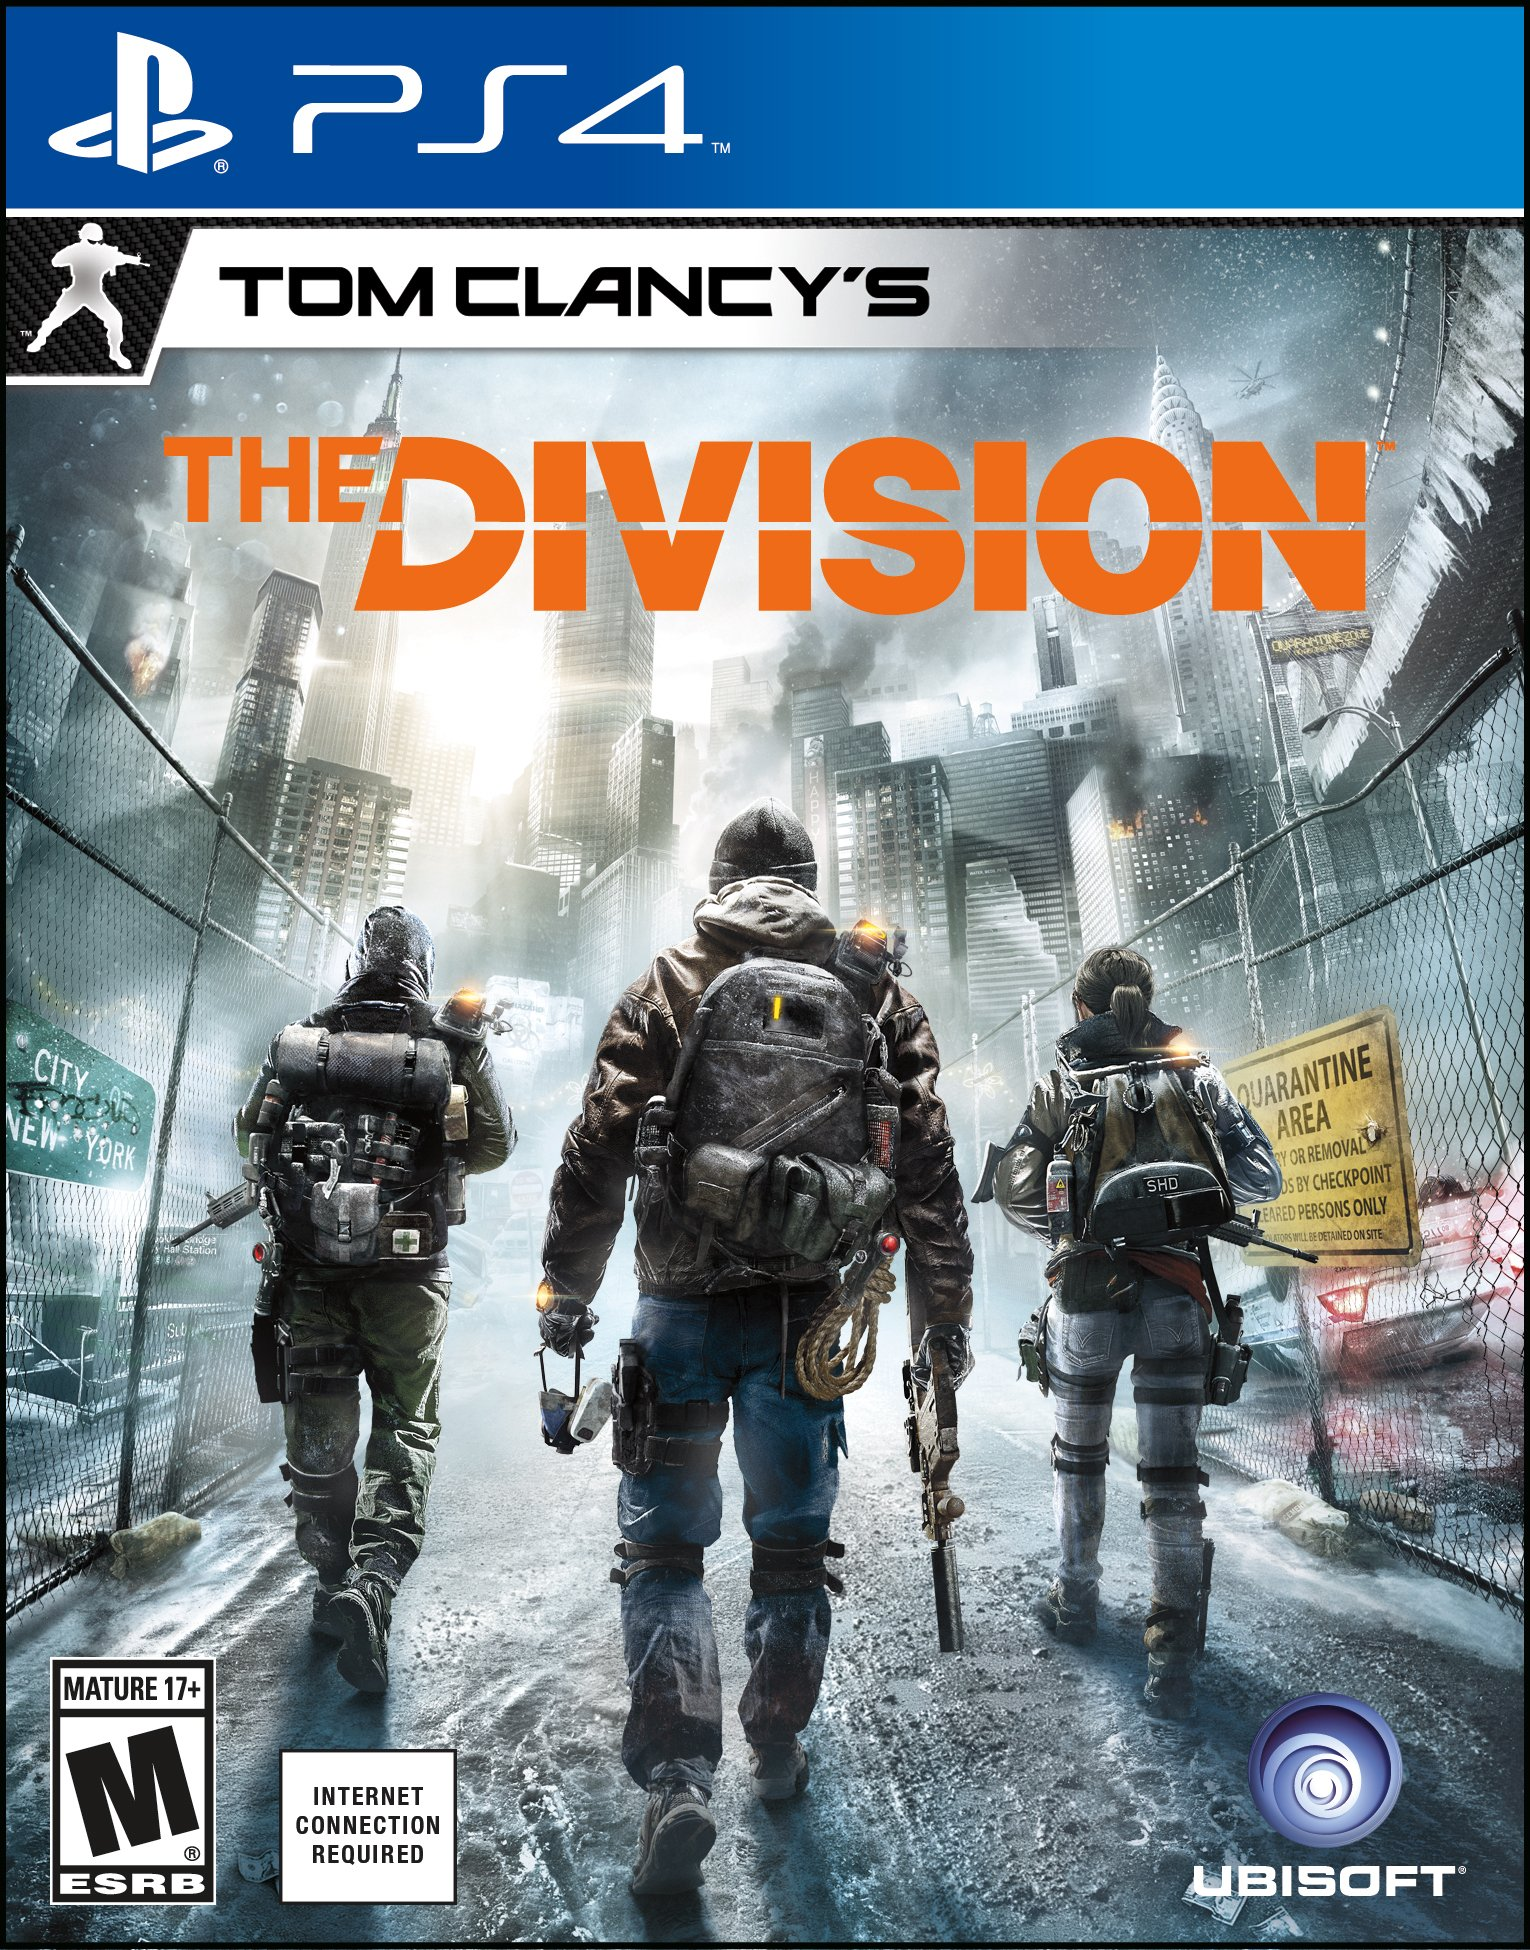 Tom Clancy's The Division - PlayStation 4 by Ubisoft